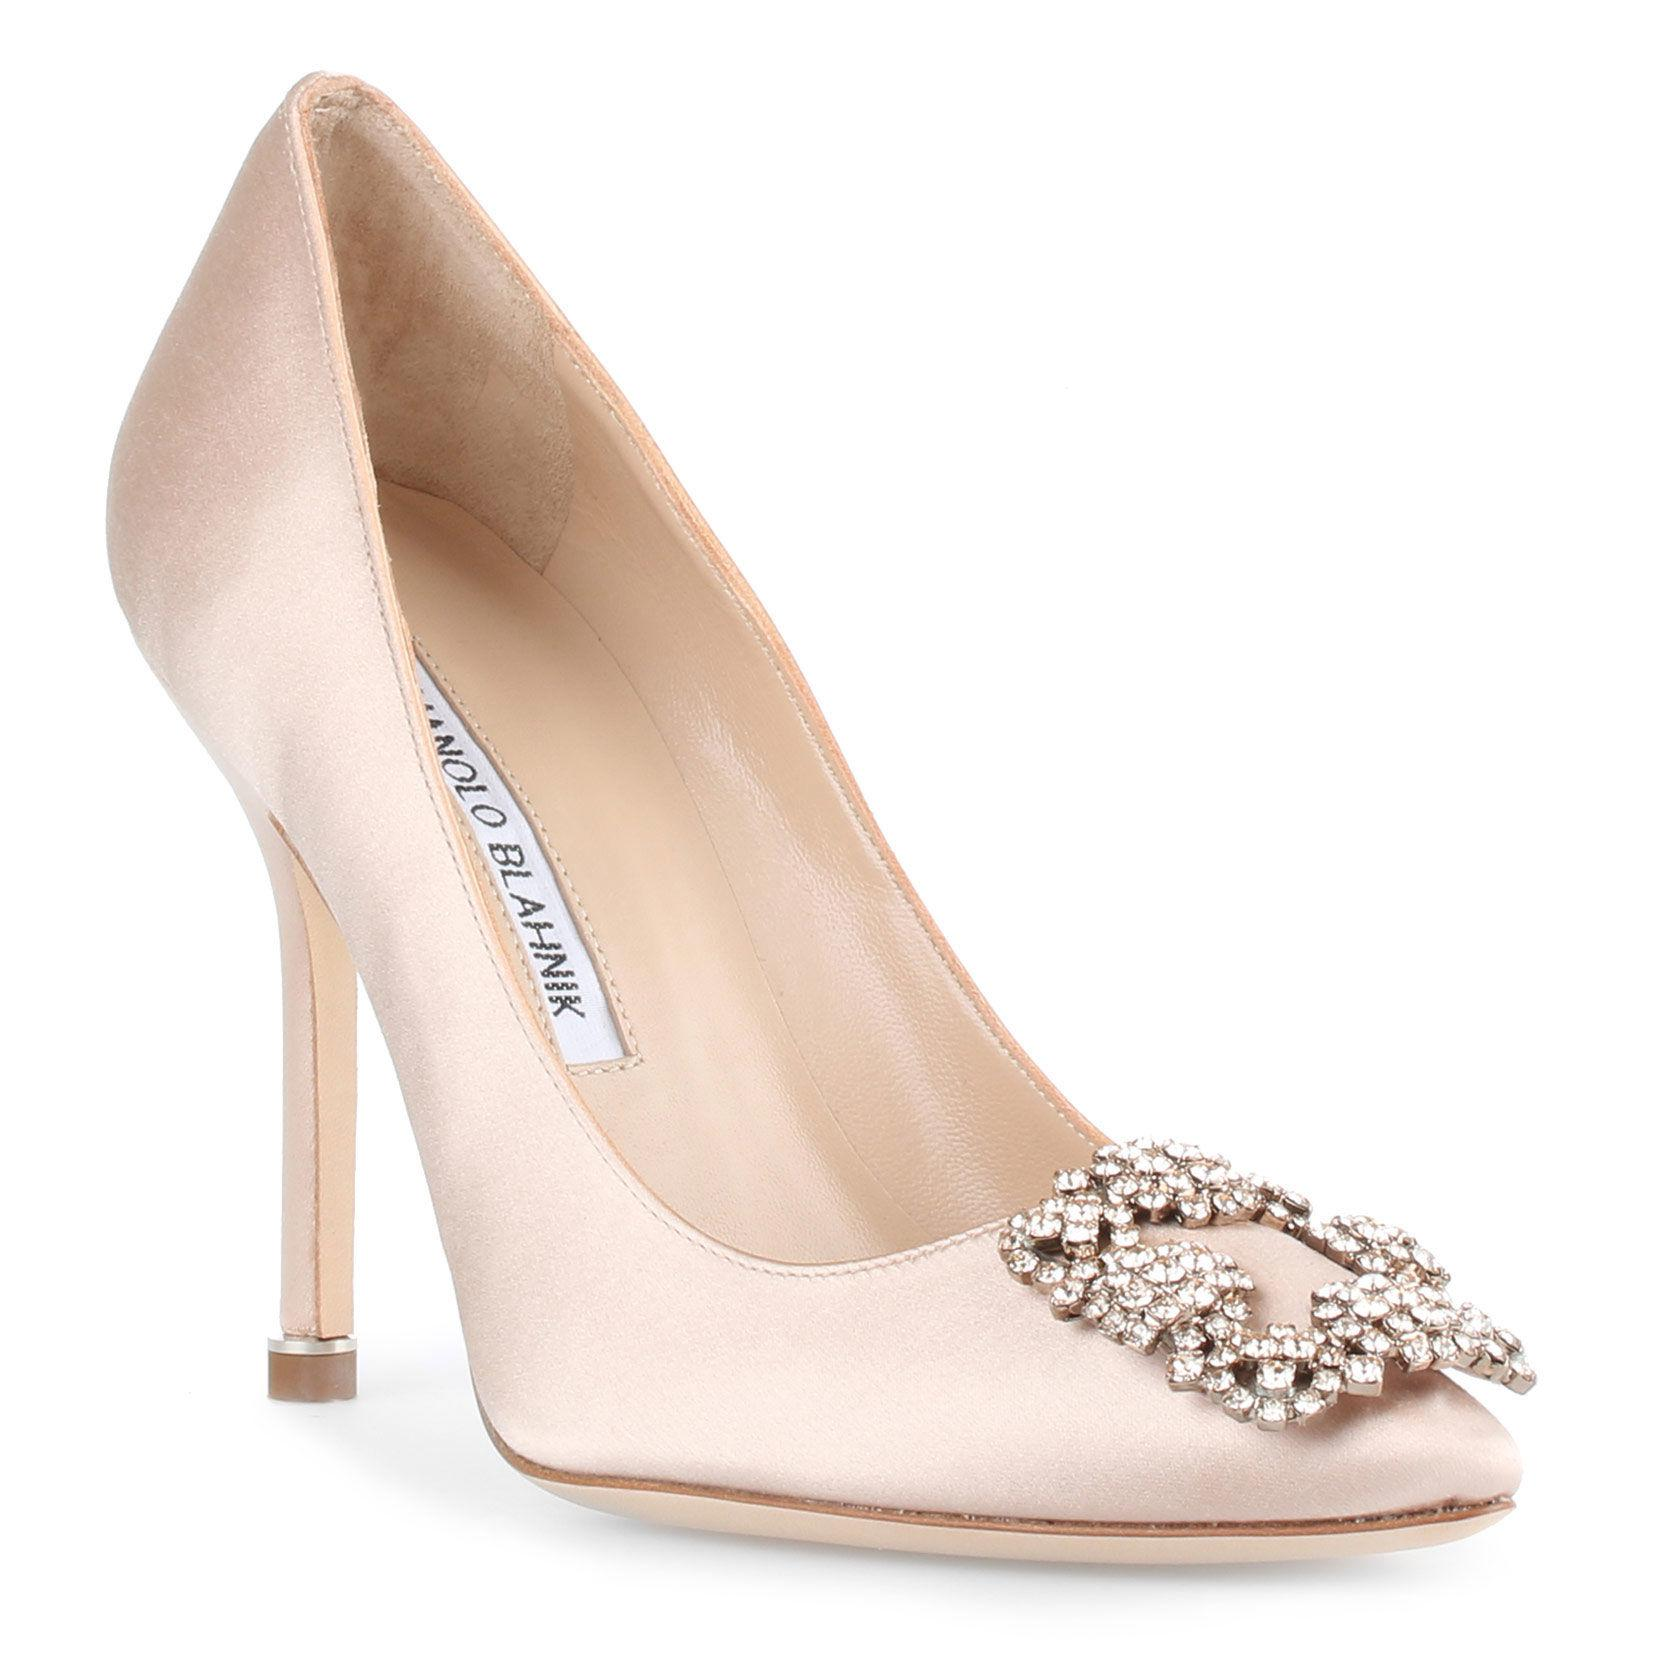 28421a6364e Lyst - Manolo Blahnik Hangisi 105 Nude Satin Pumps in Natural